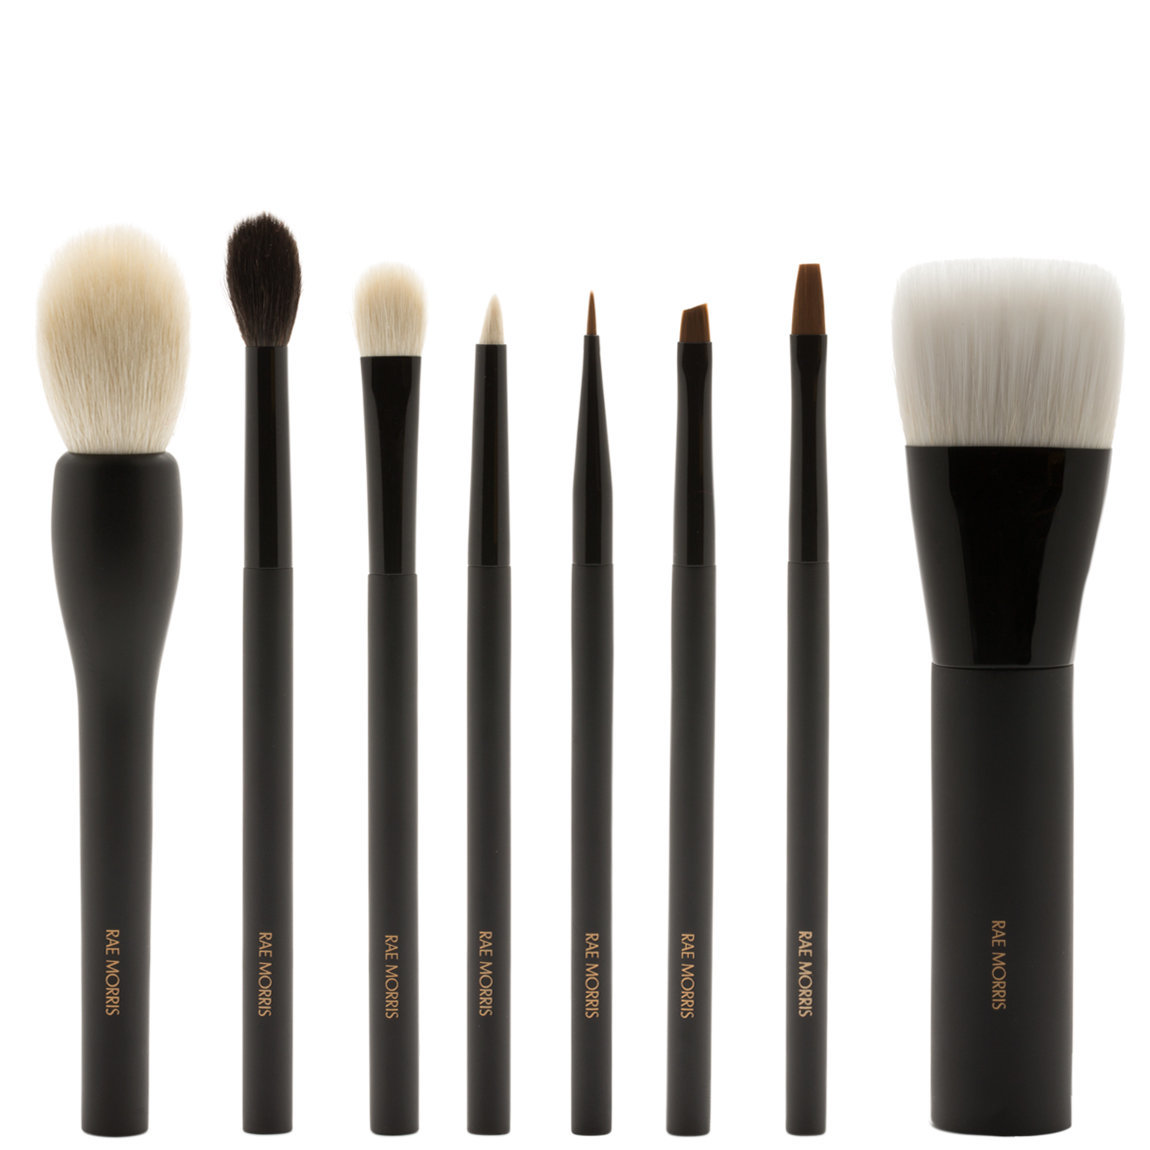 Rae Morris Rae Morris Personal Set alternative view 1 - product swatch.